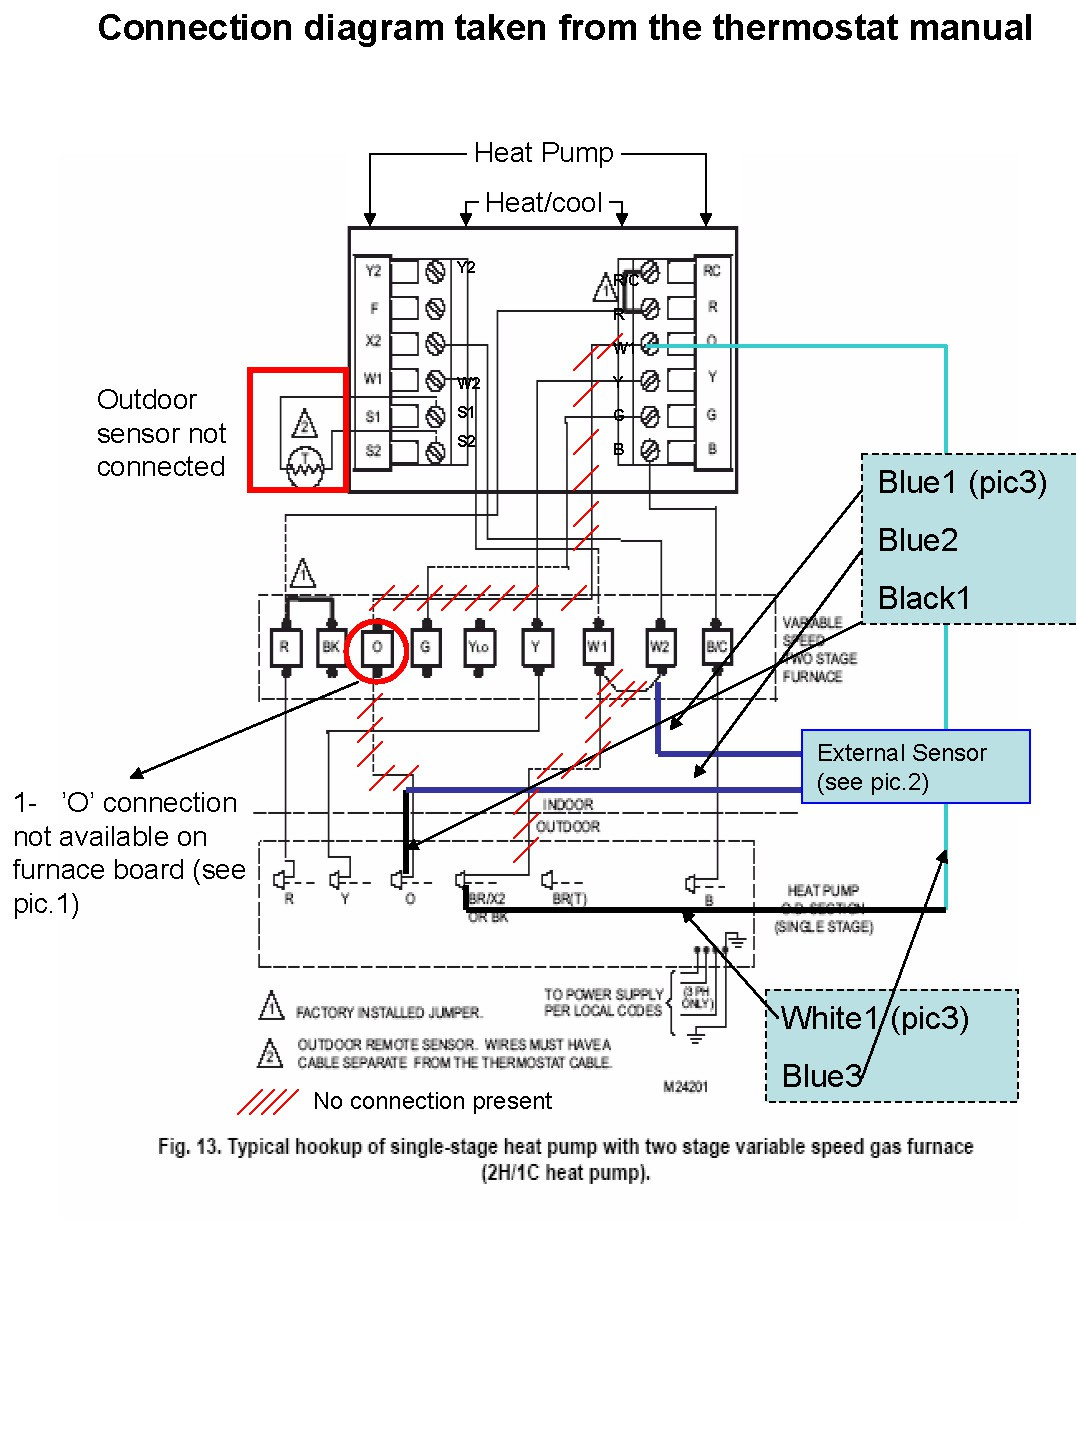 single stage thermostat wiring diagram automotive wiring diagram u2022 rh nfluencer co 2 stage furnace thermostat wiring 2 stage thermostat wiring diagram